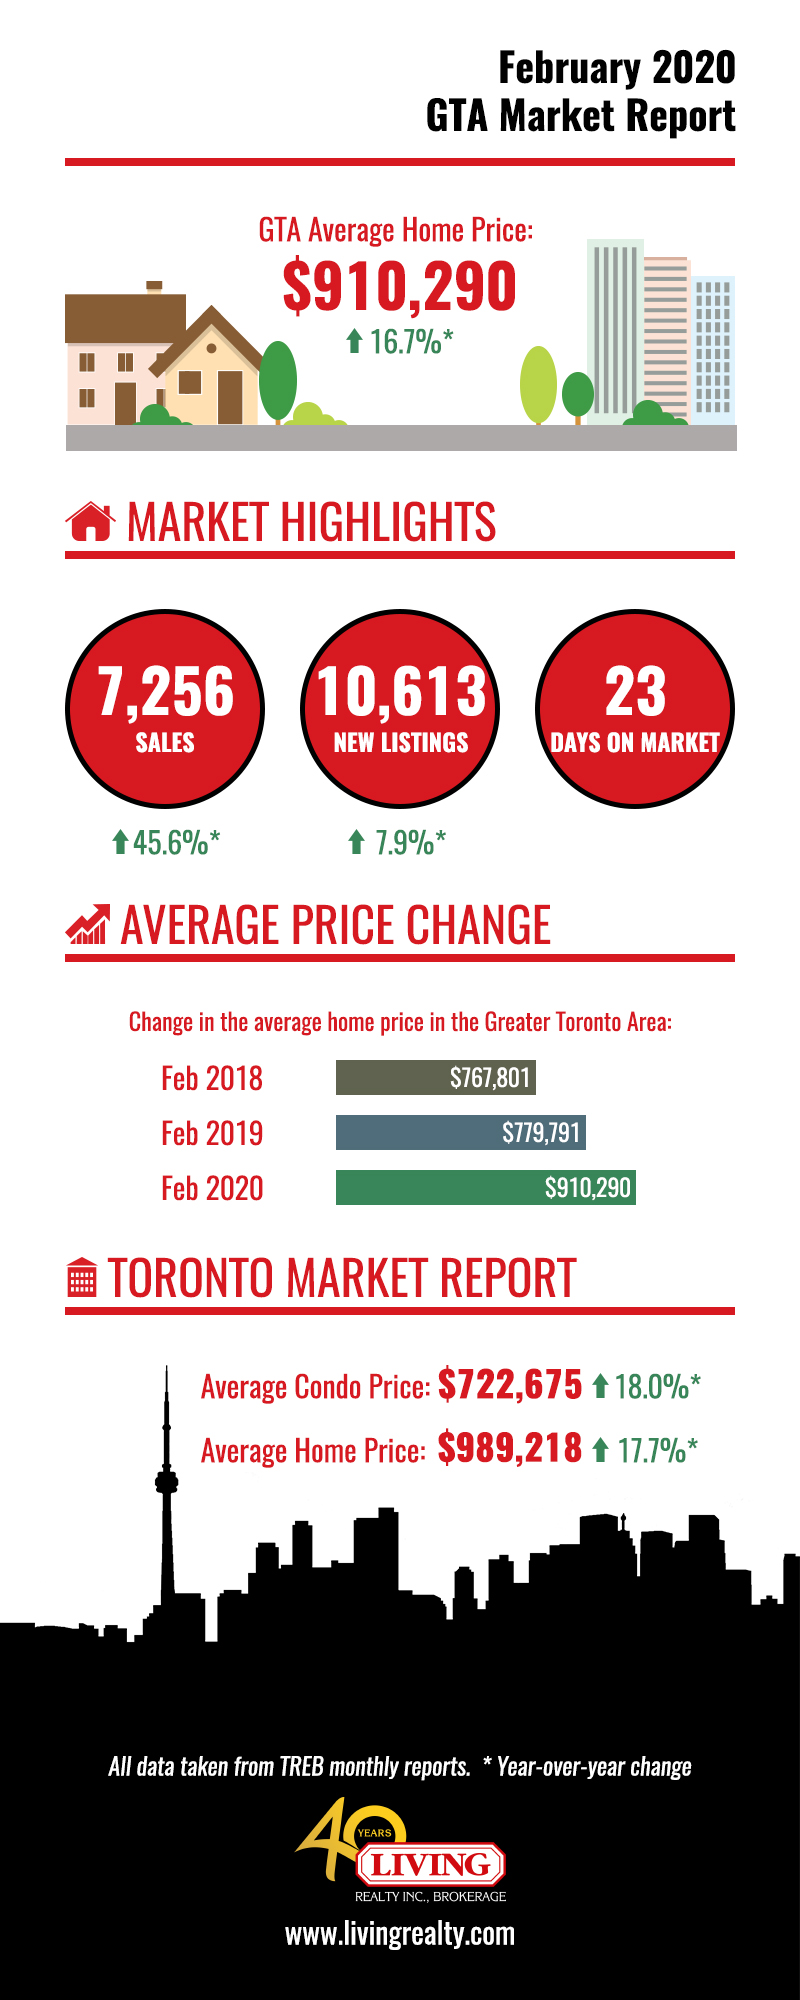 Housing market infographic showing impact of March 2020 interest rate cuts on Toronto real estate.